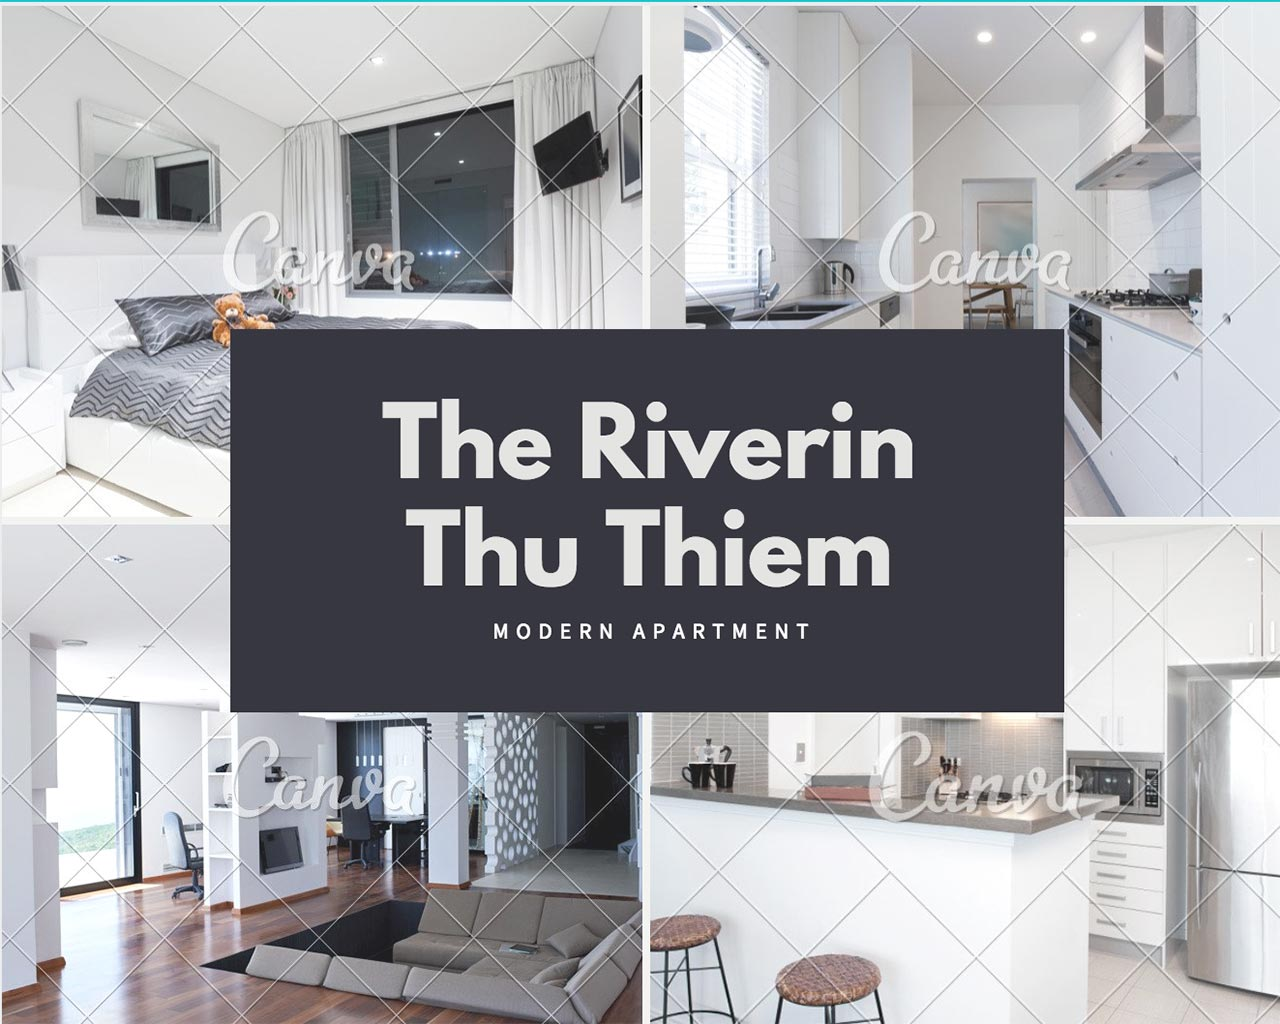 The Riverin apartment district 2